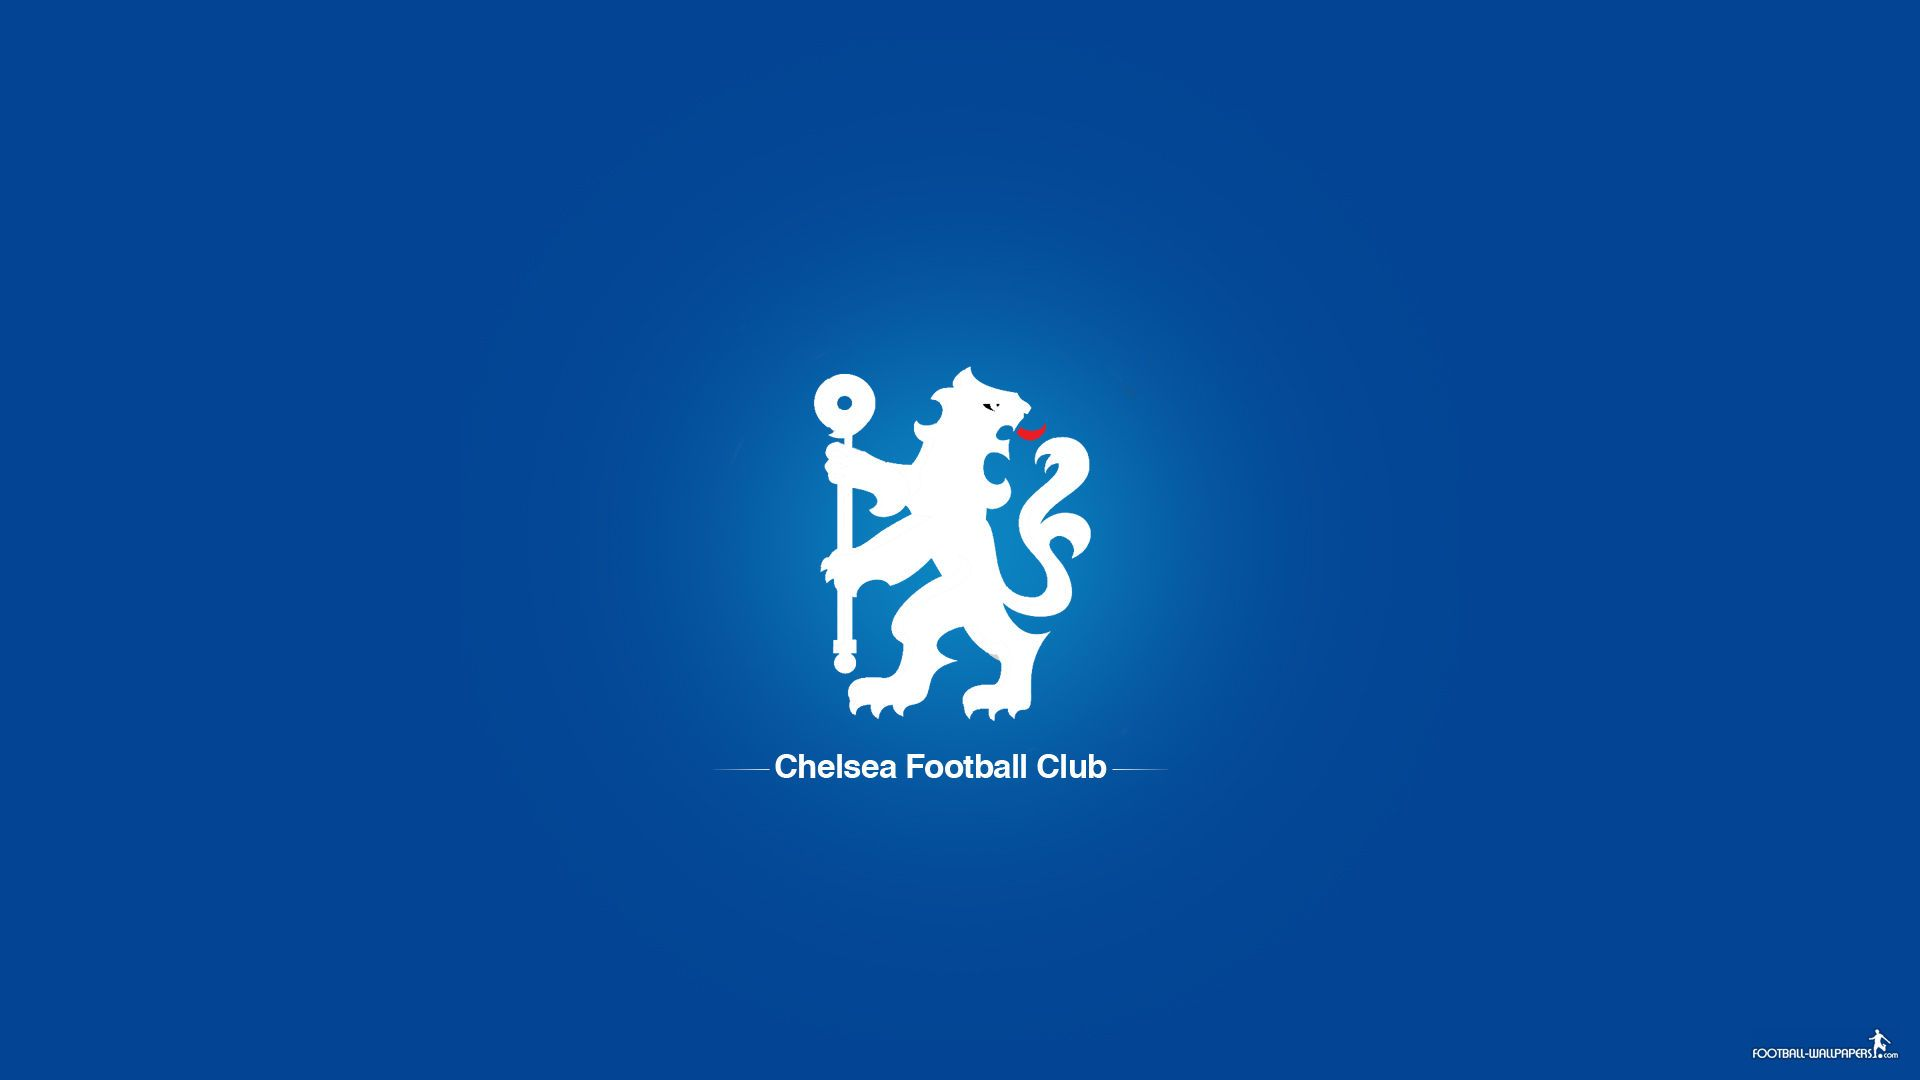 Chelsea Fc Desktop Wallpaper 1920x1080 Wallpapers: Players